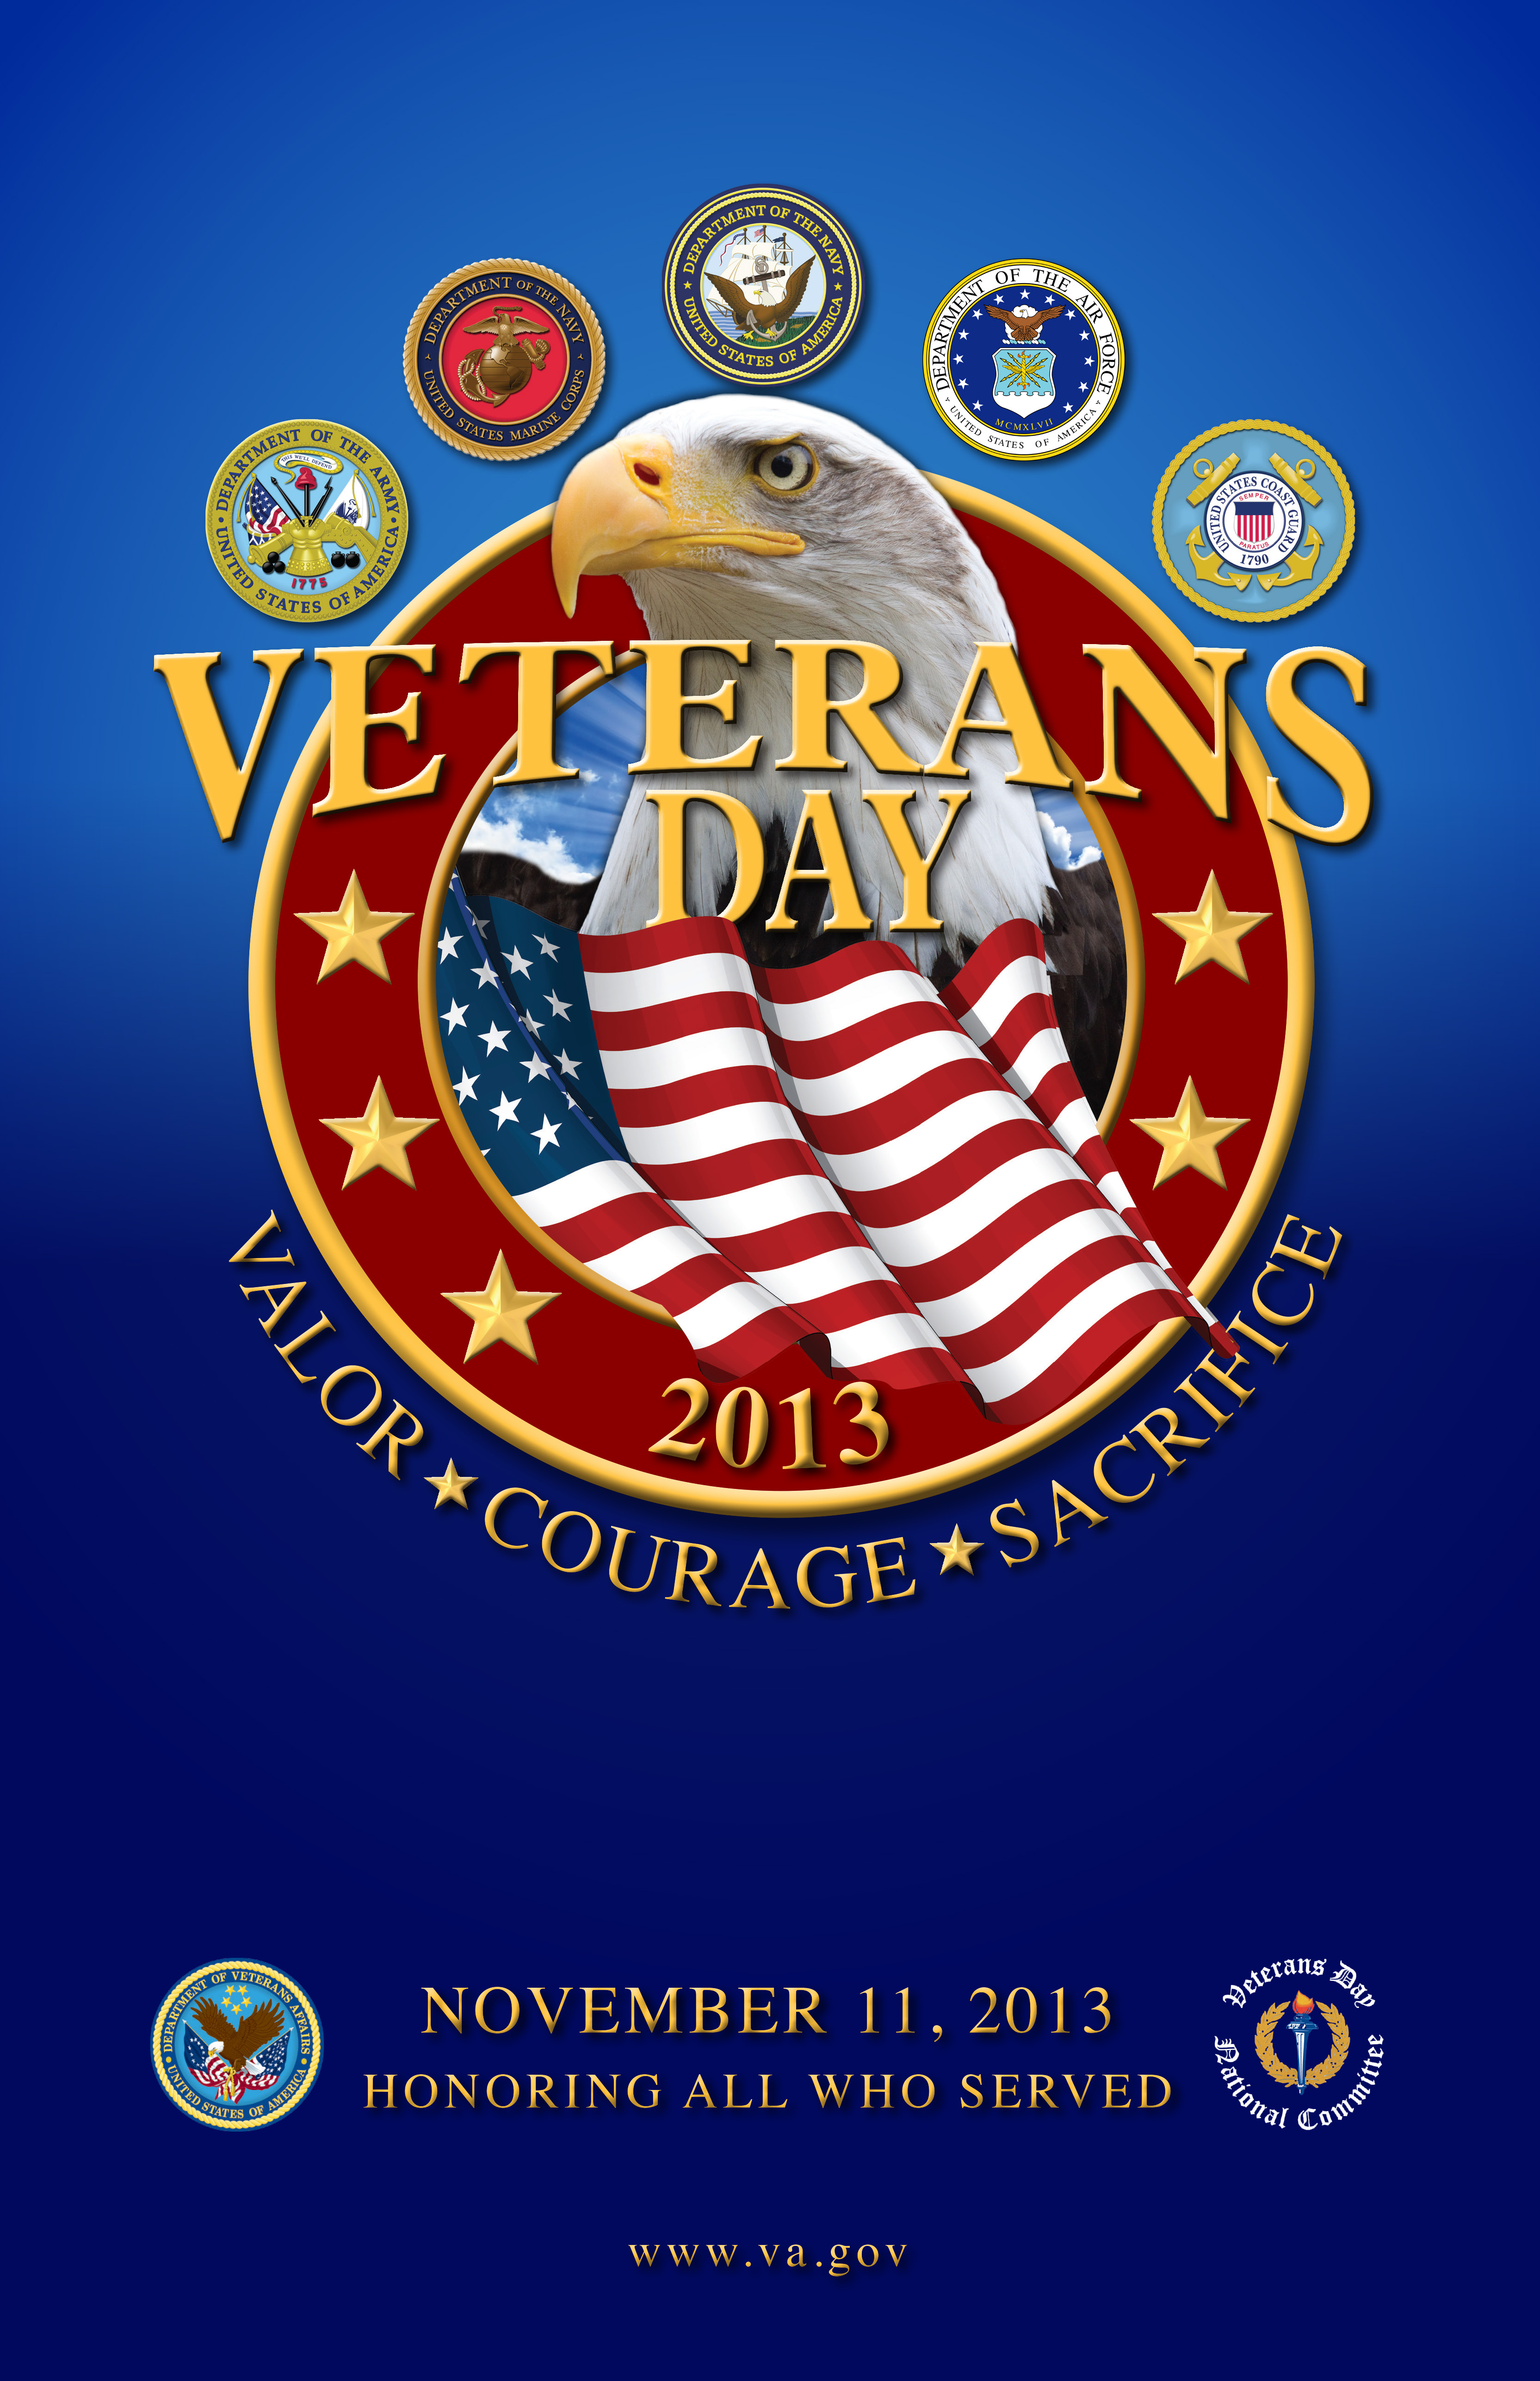 Texas Veterans Day Clip Art